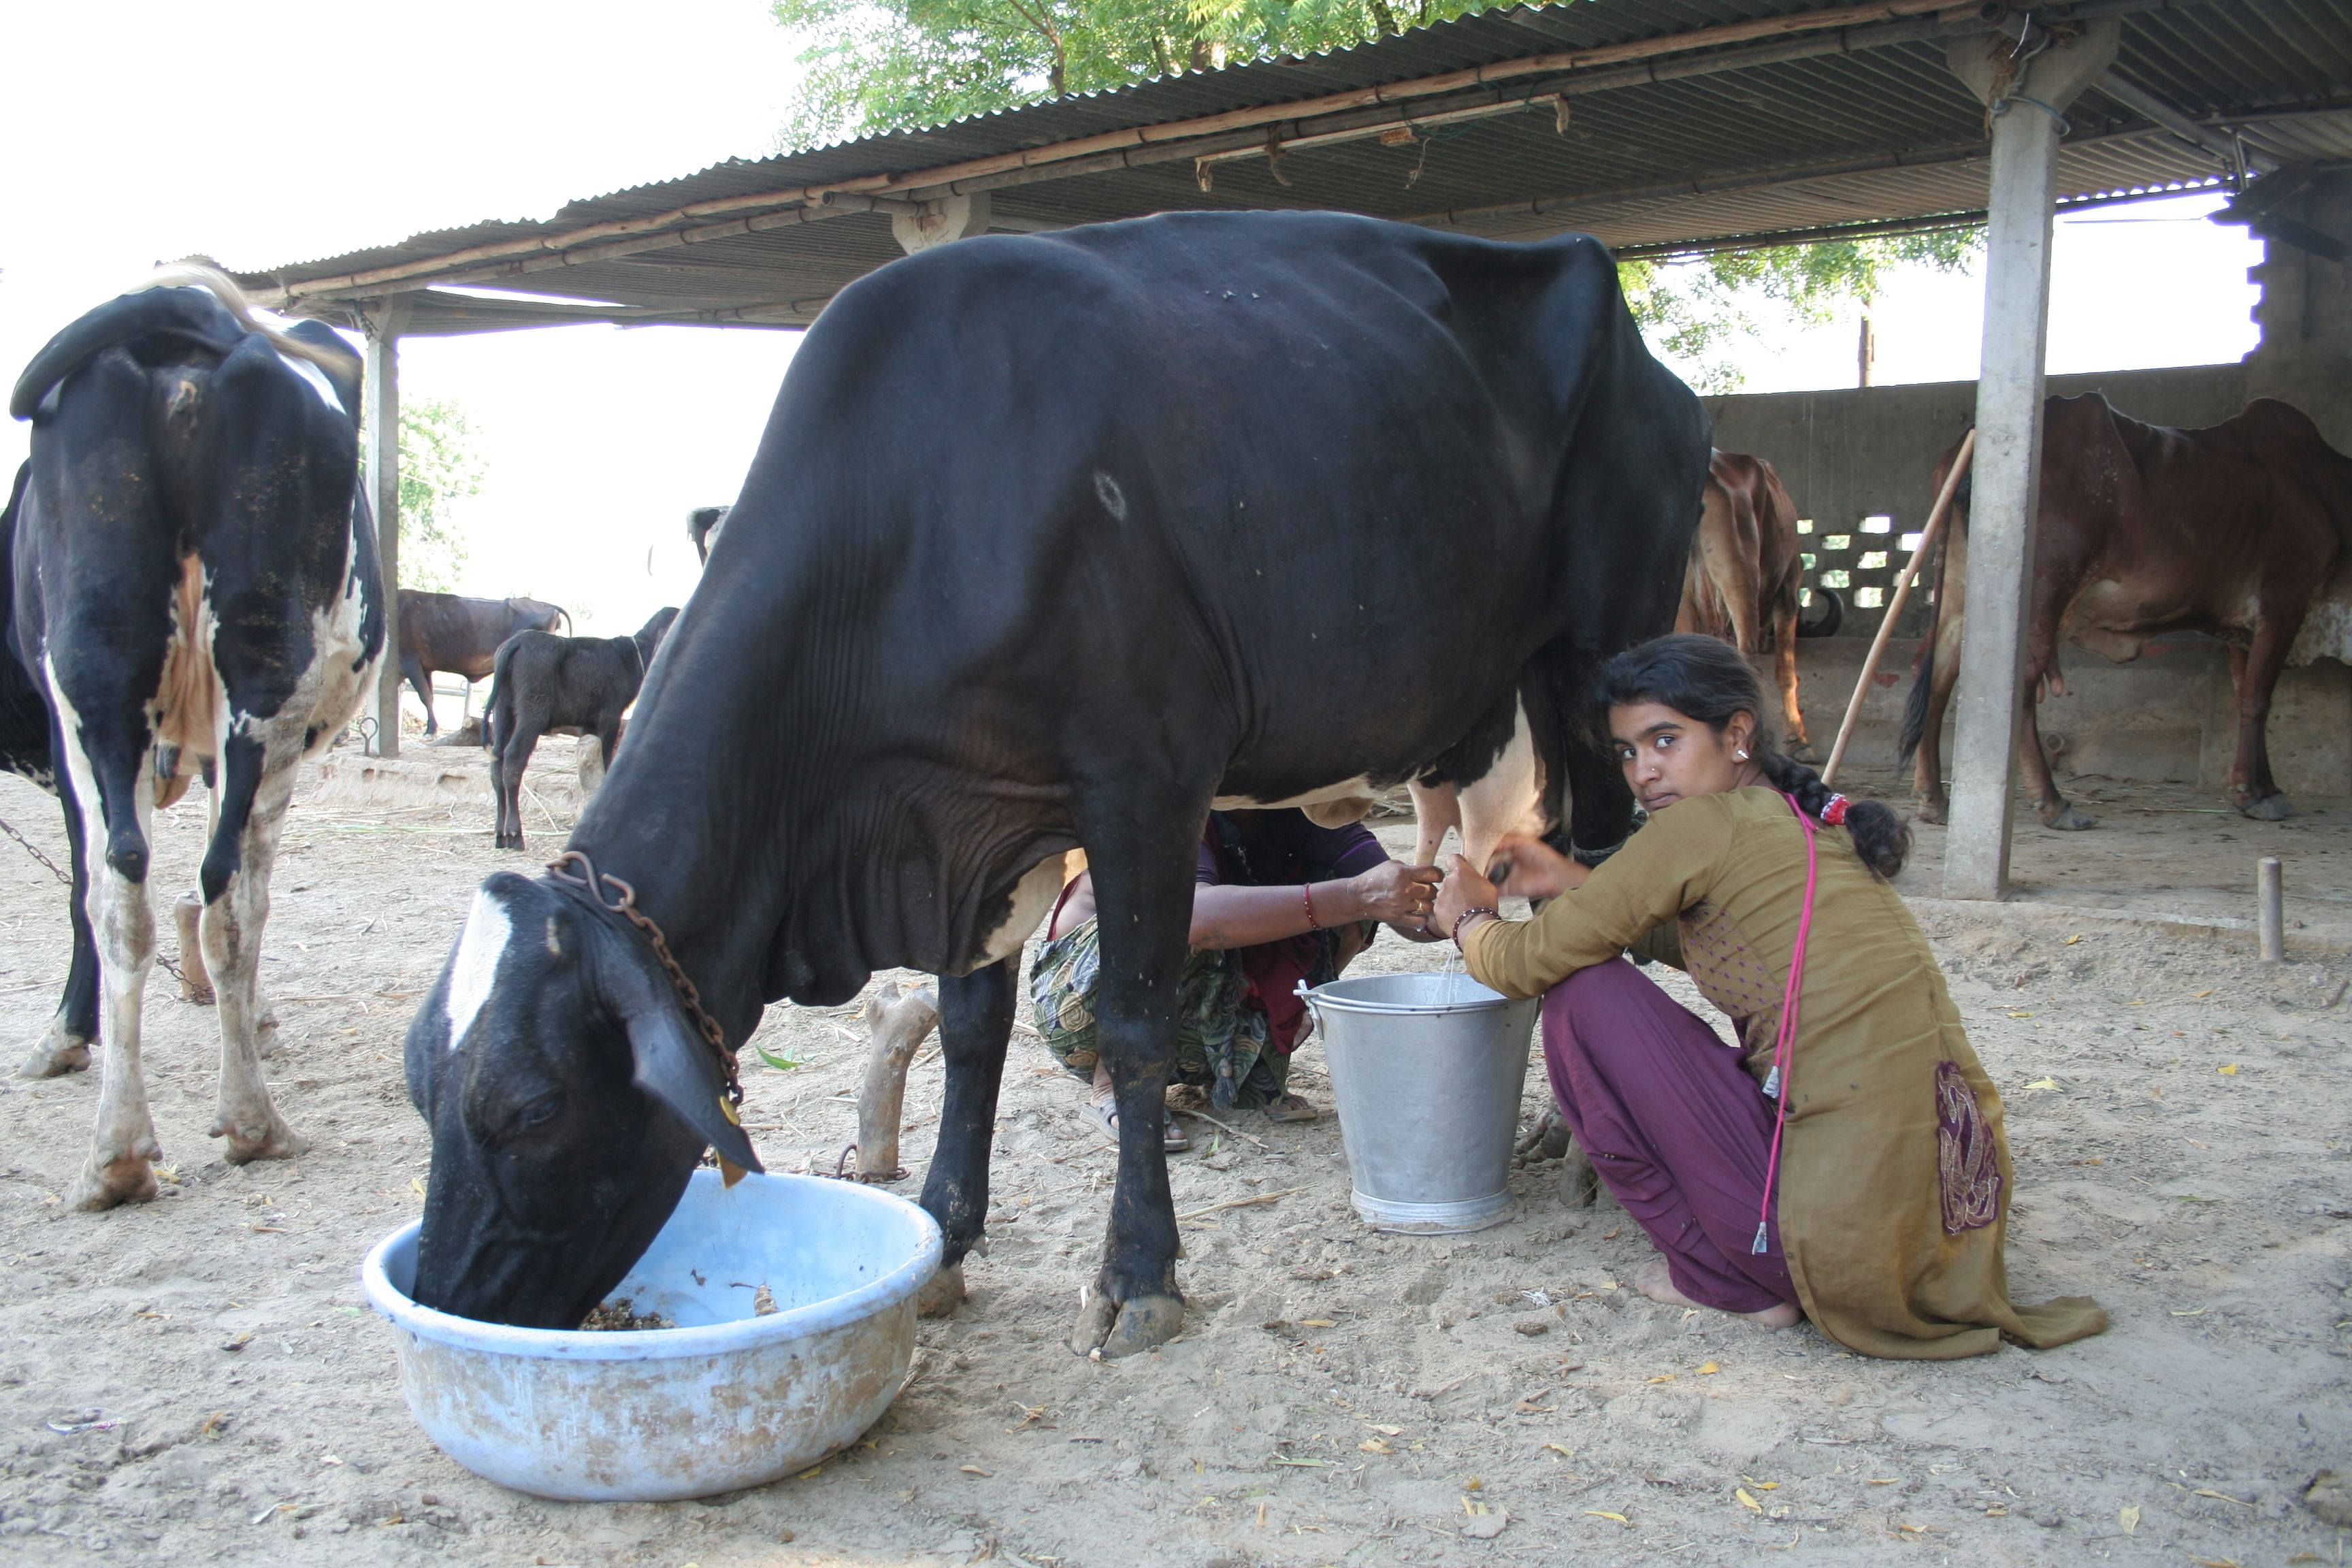 Cow milking. For representational purposes only. (Source: Wikimedia Commons)